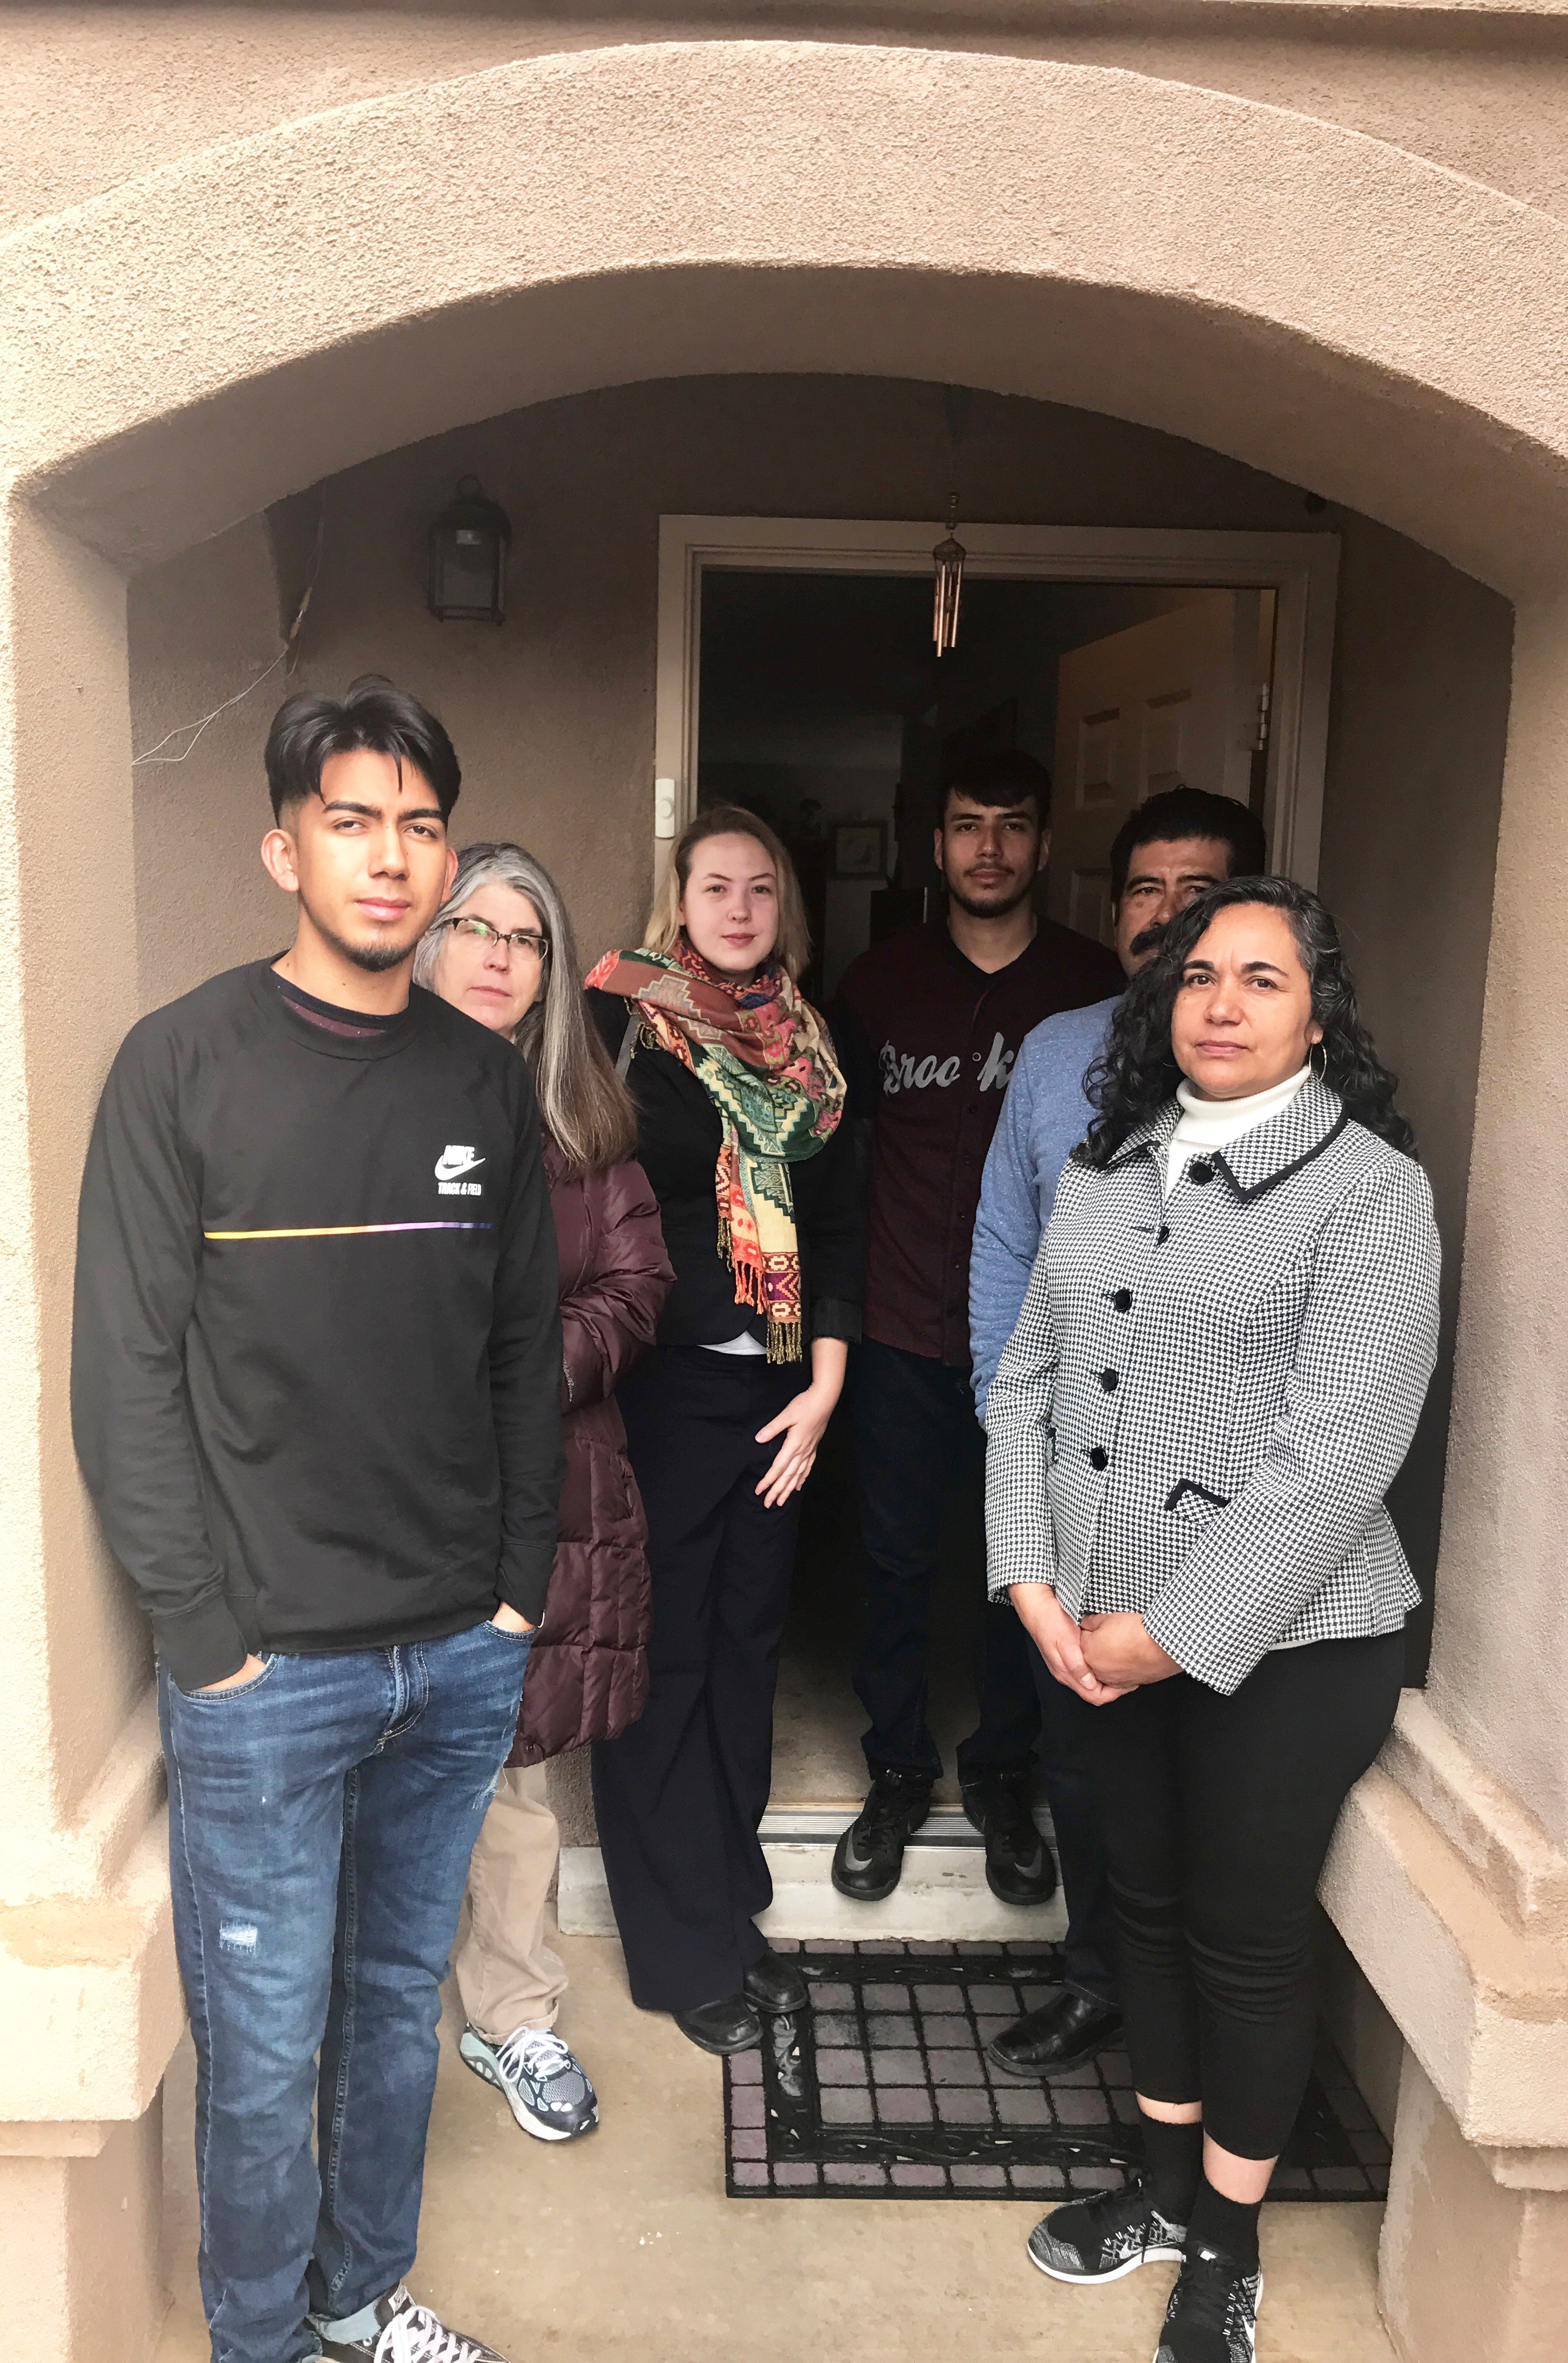 The Aguirre family at their West side home. From left: Son Josh, Tierra del Sol Housing Counselor Lisa Nichols, NMLA Attorney Mari Kempton, Son Daniel Jr., Daniel Aguirre and Aida Aguirre